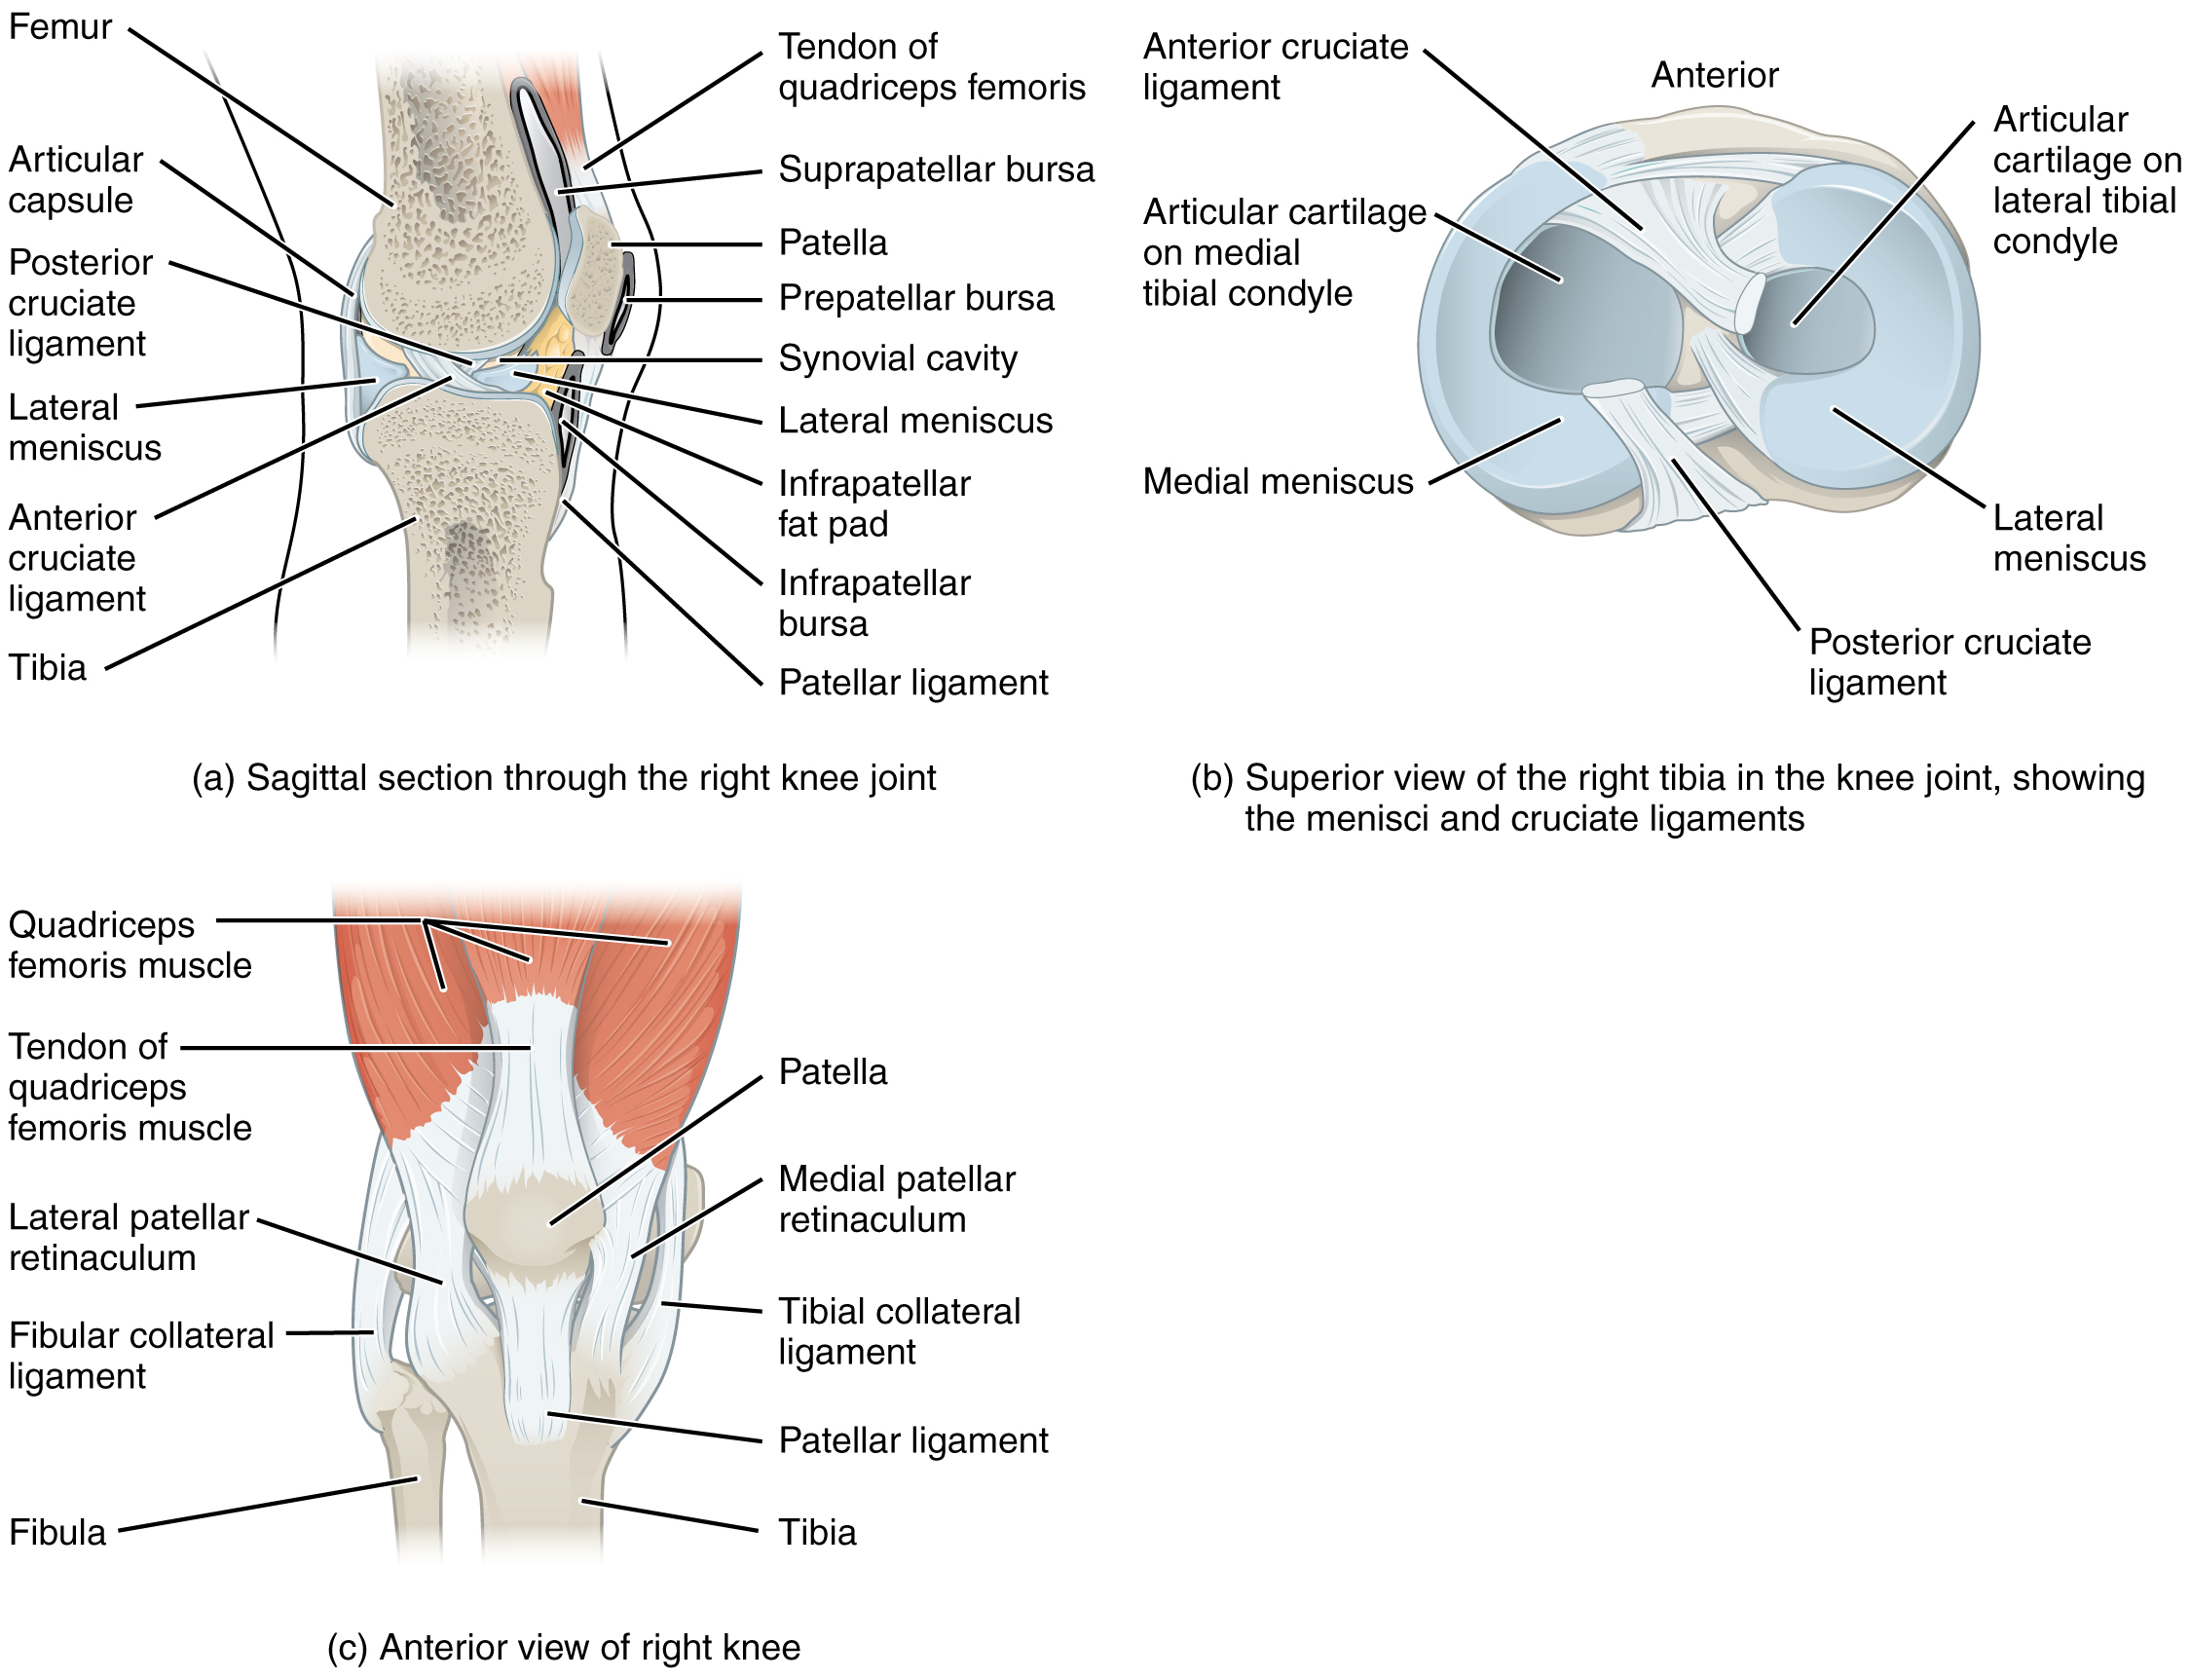 Anatomy and Physiology - Anatomy of Selected Synovial Joints